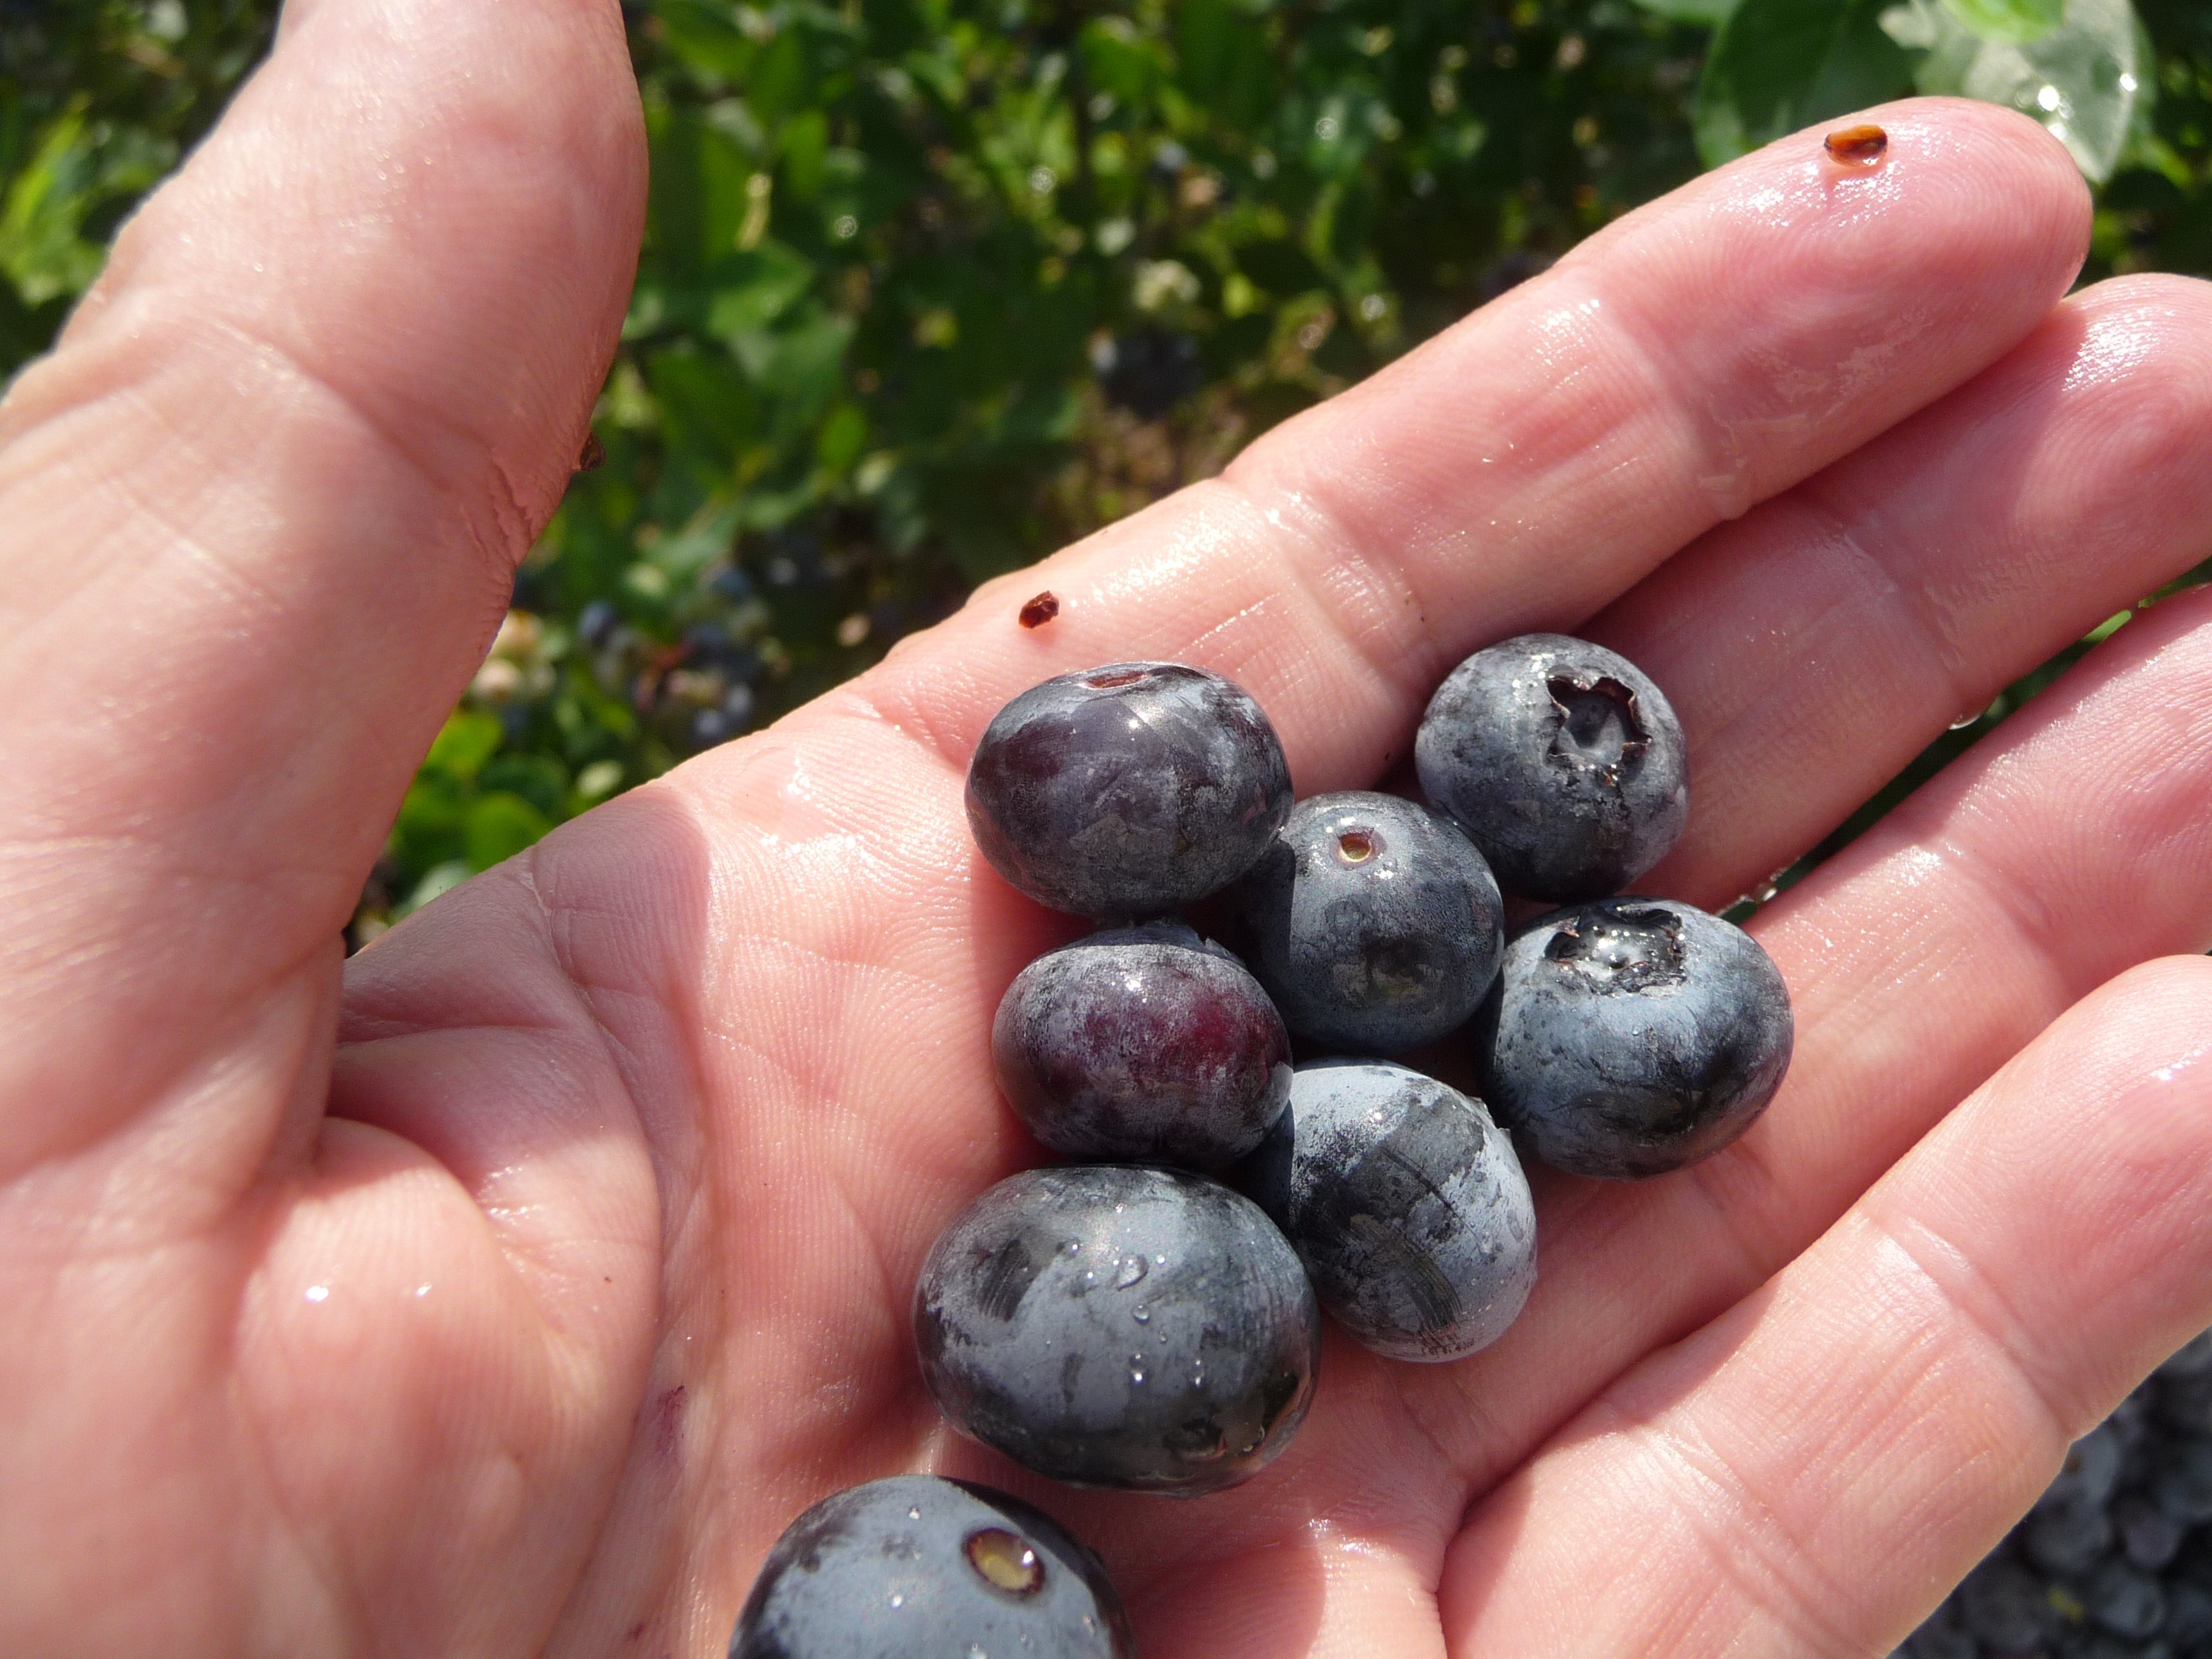 Picking blueberries in June